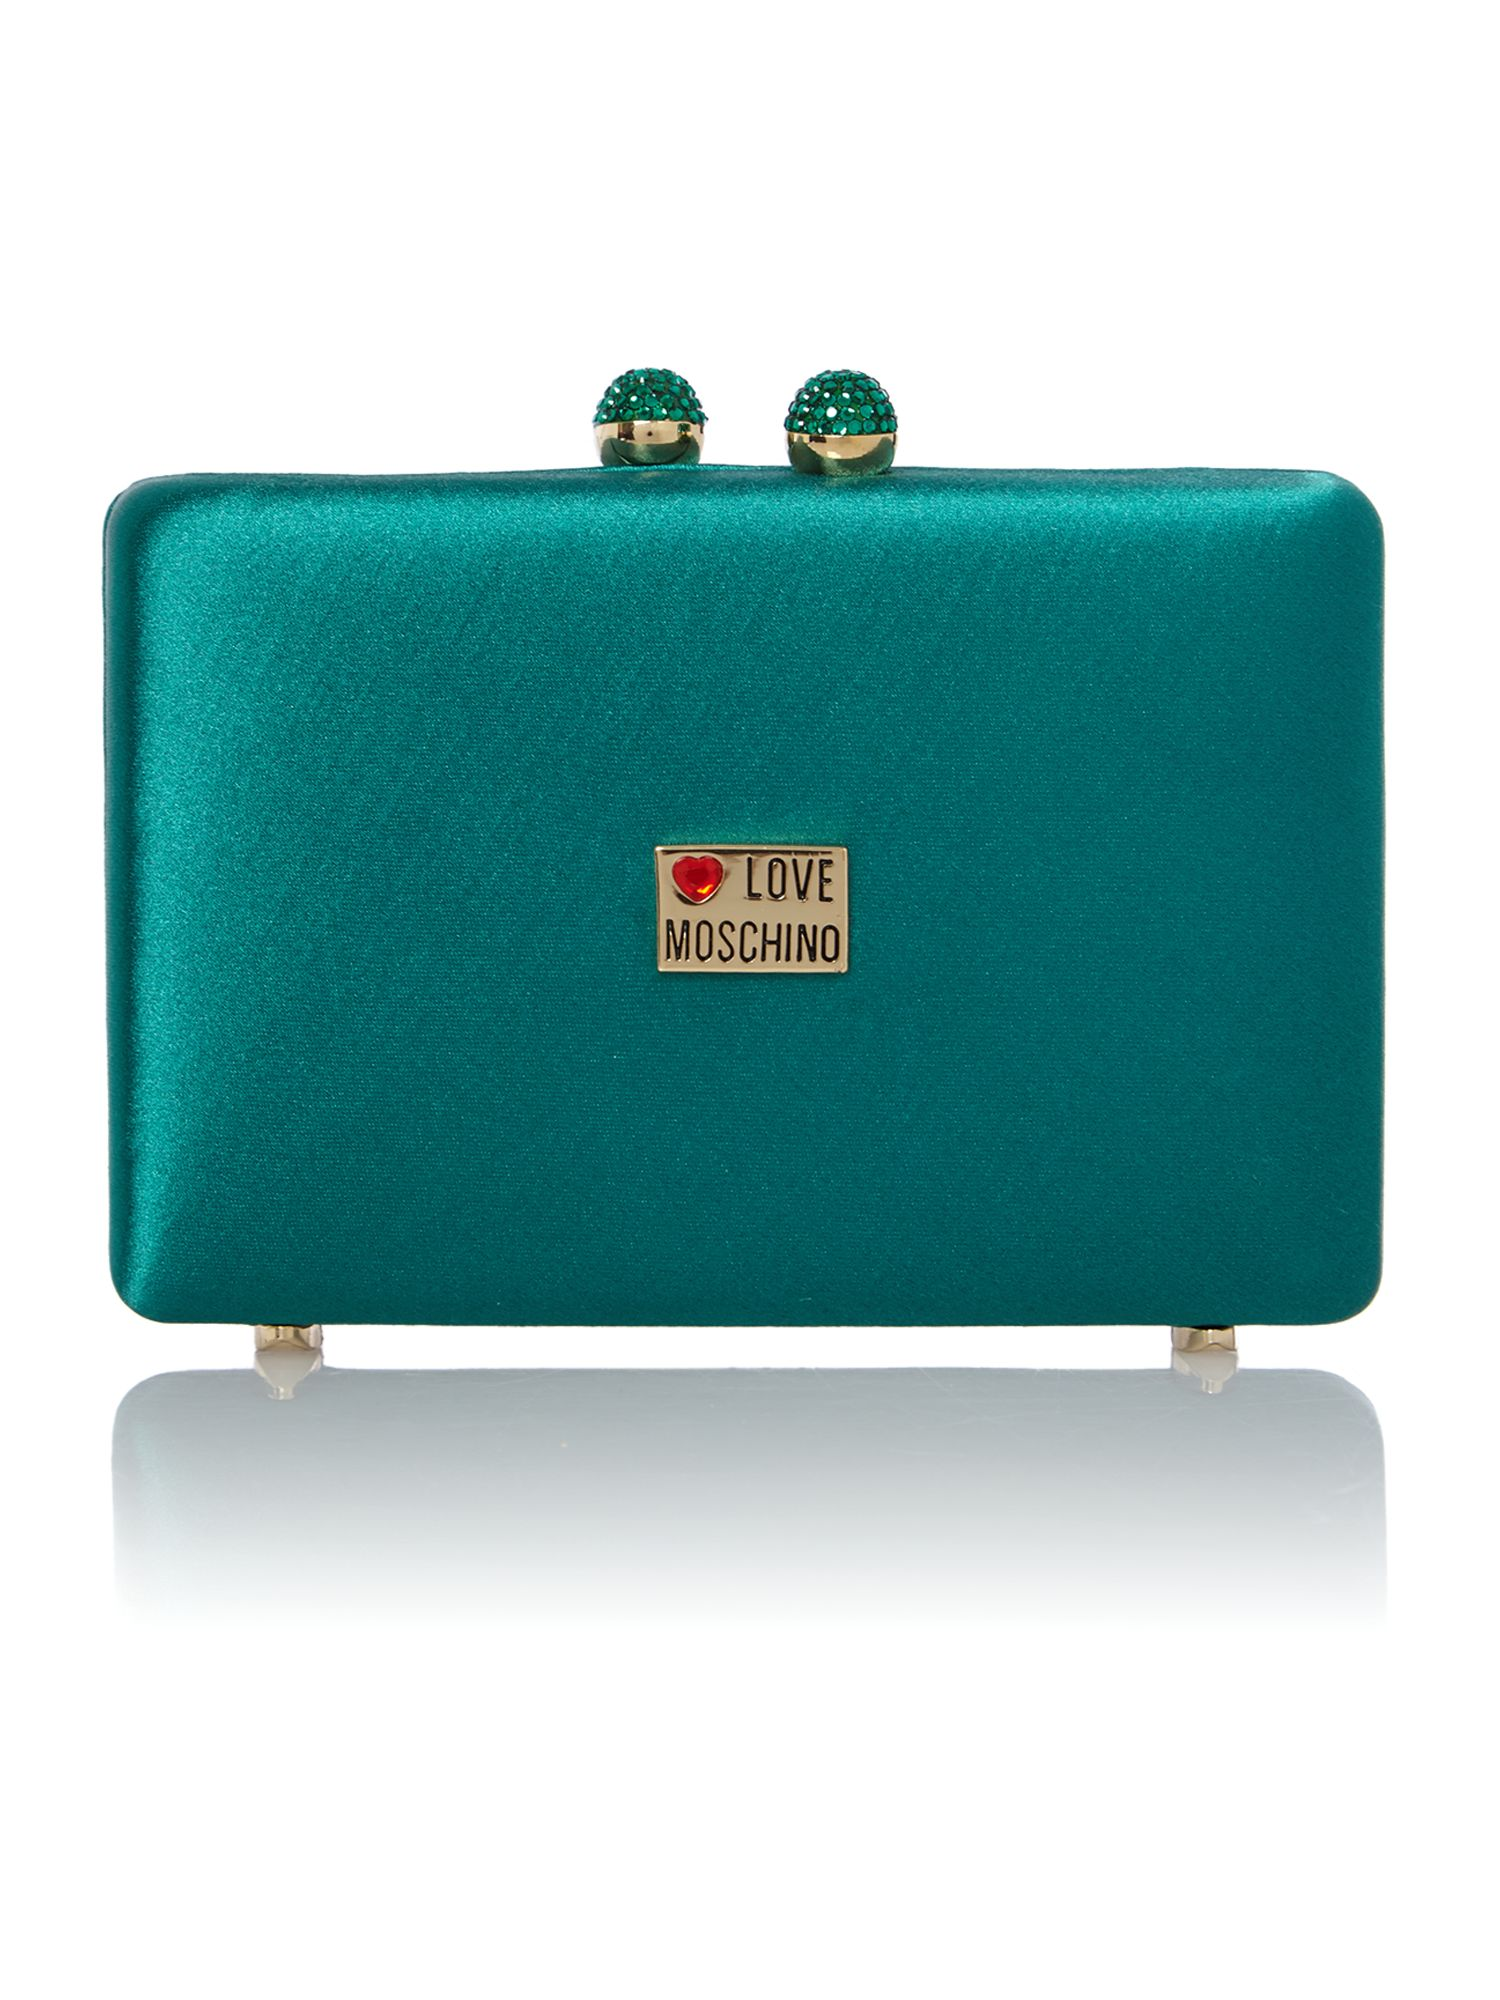 Small green jewel clutch